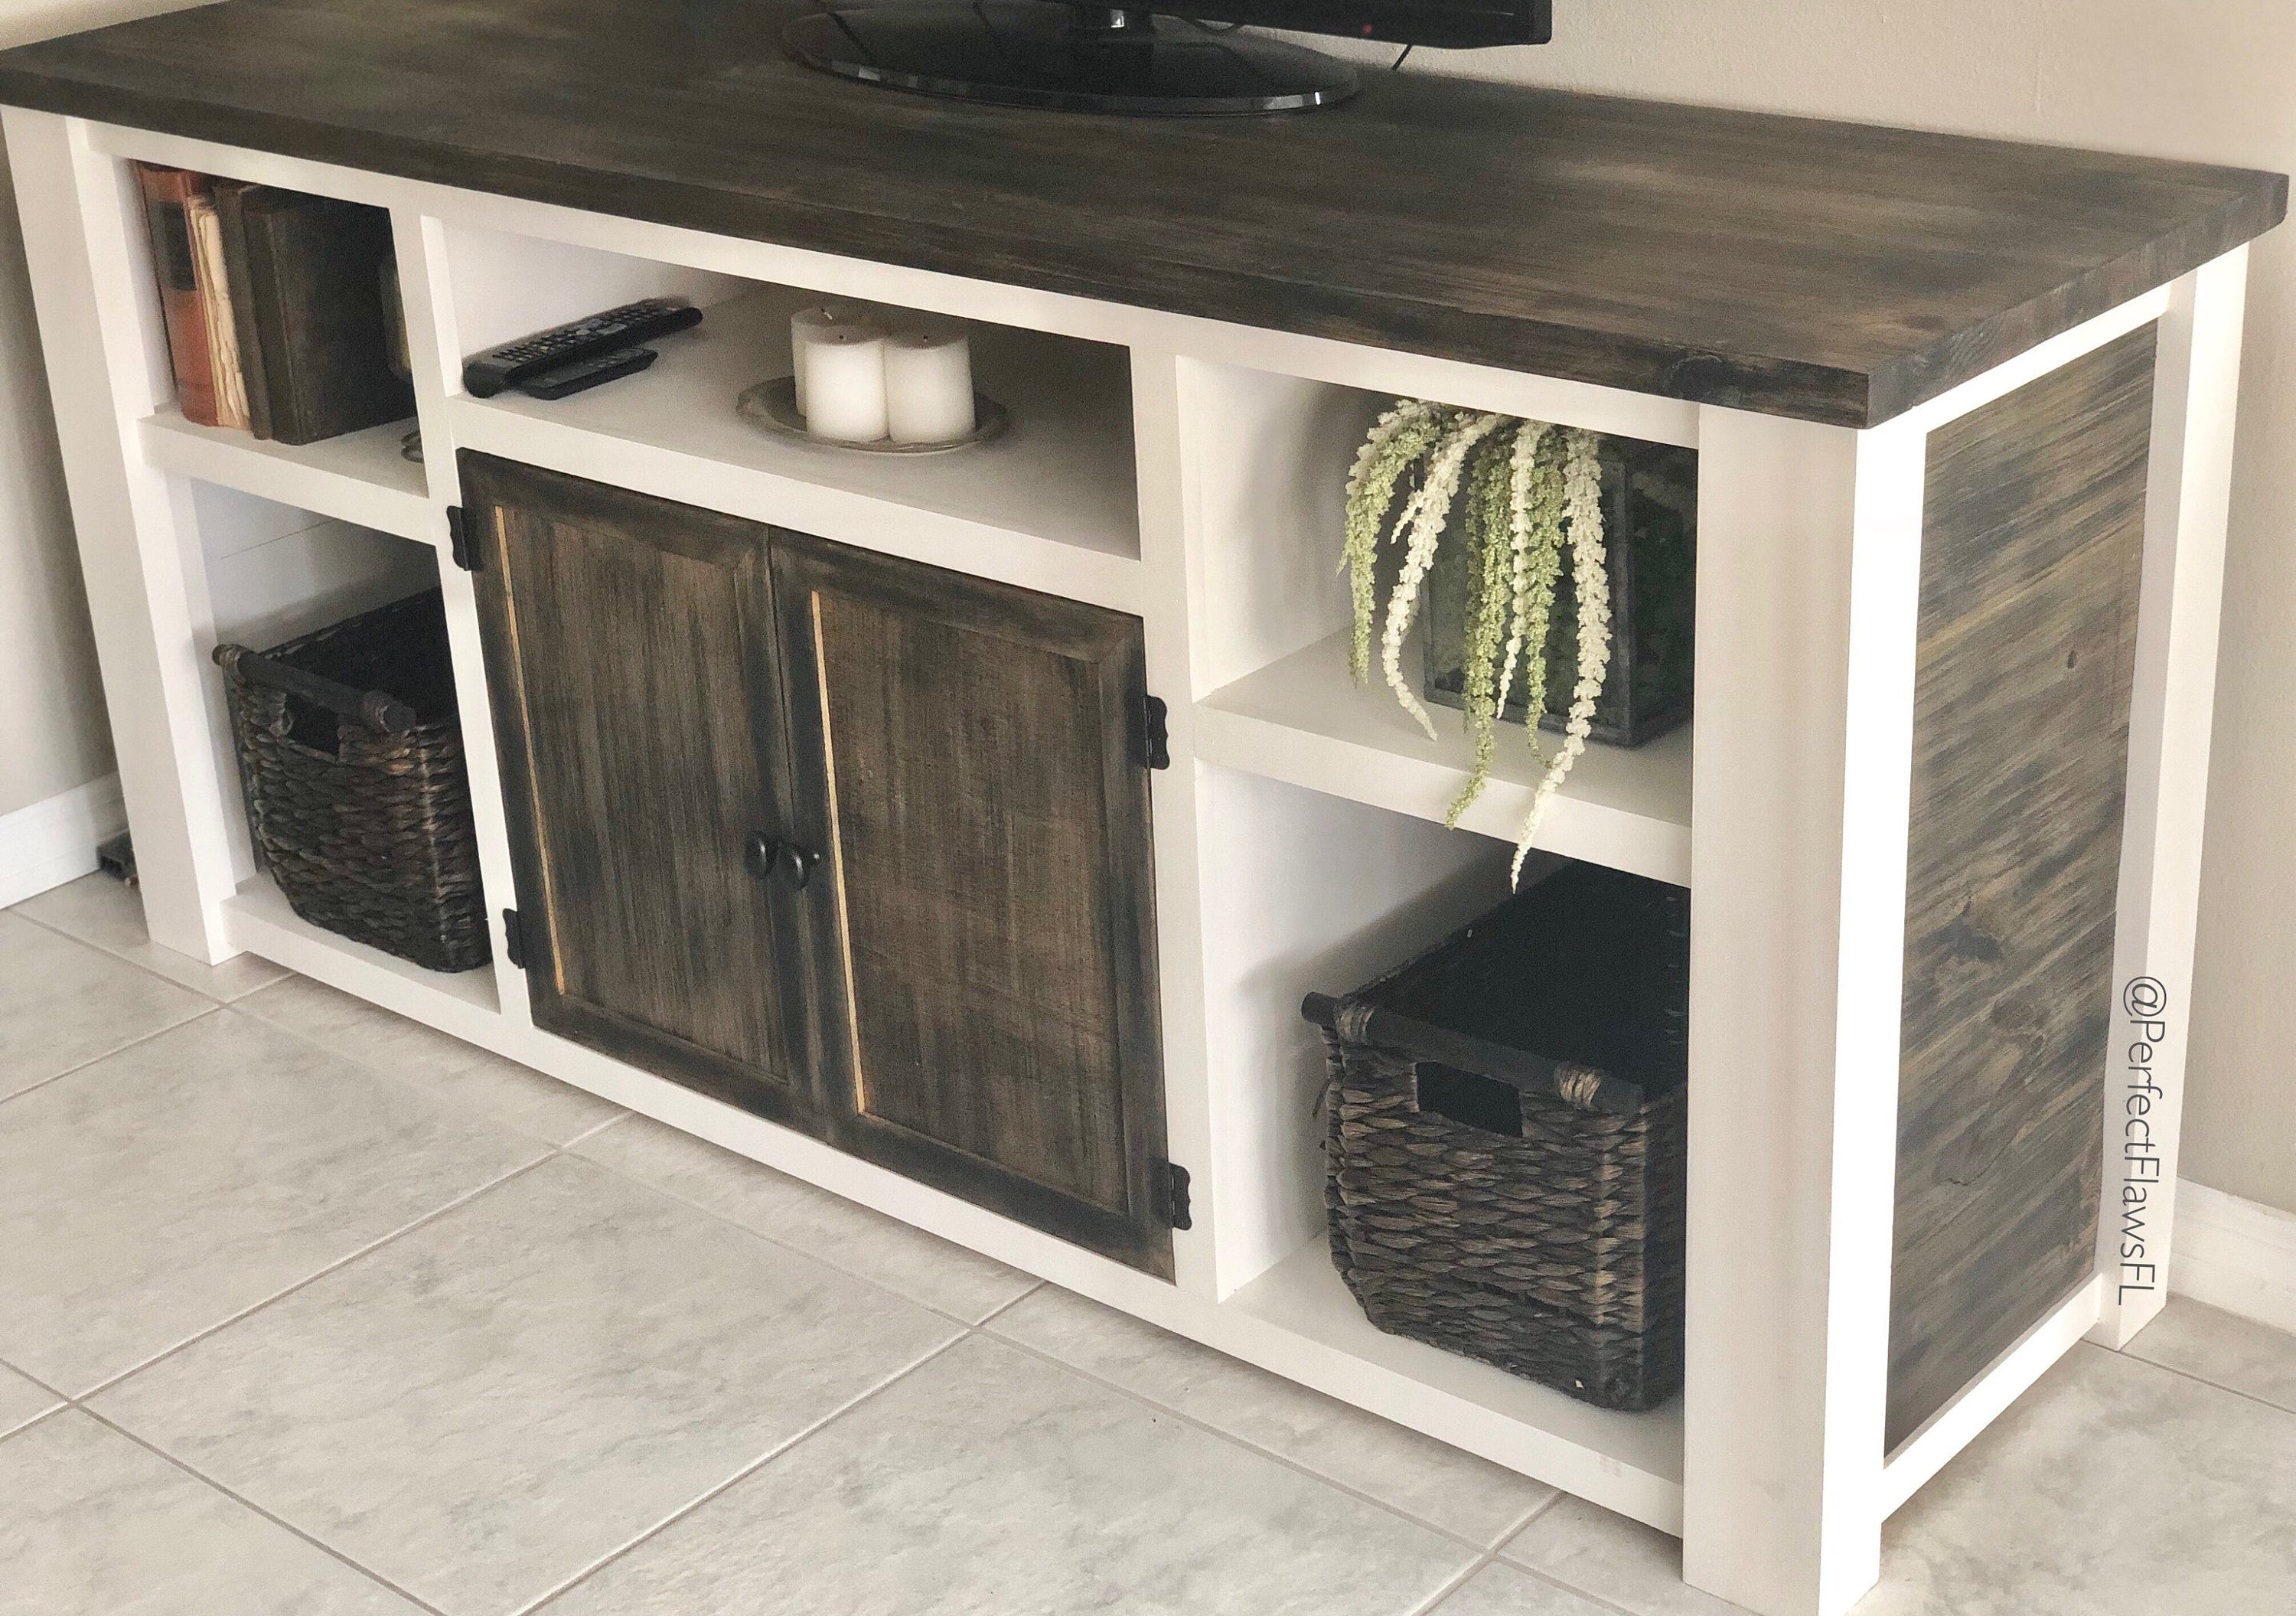 Farmhouse Tv Stand Cabinet Door Tv Stand Rustic Tv Stand Rustic Tv Stand Farmhouse Tv Console Farmhouse Tv Stand